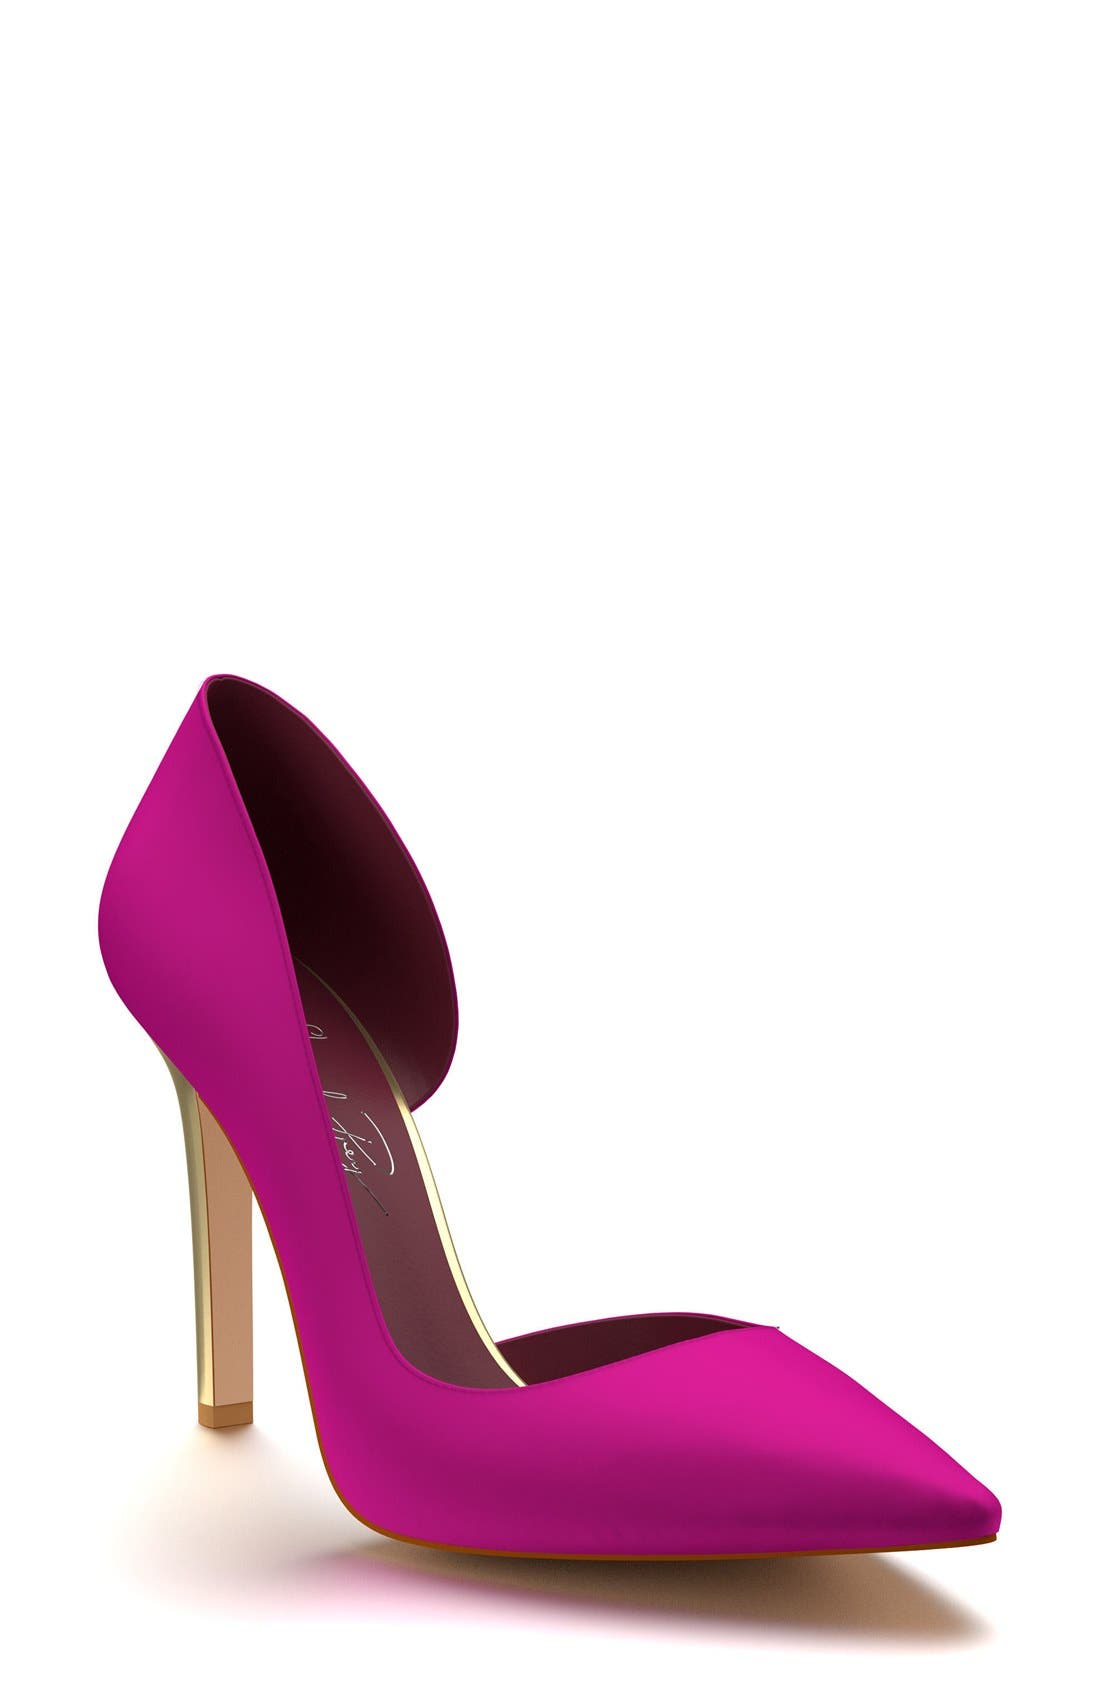 Alternate Image 1 Selected - Shoes of Prey Pointy Toe Half d'Orsay Pump (Women)